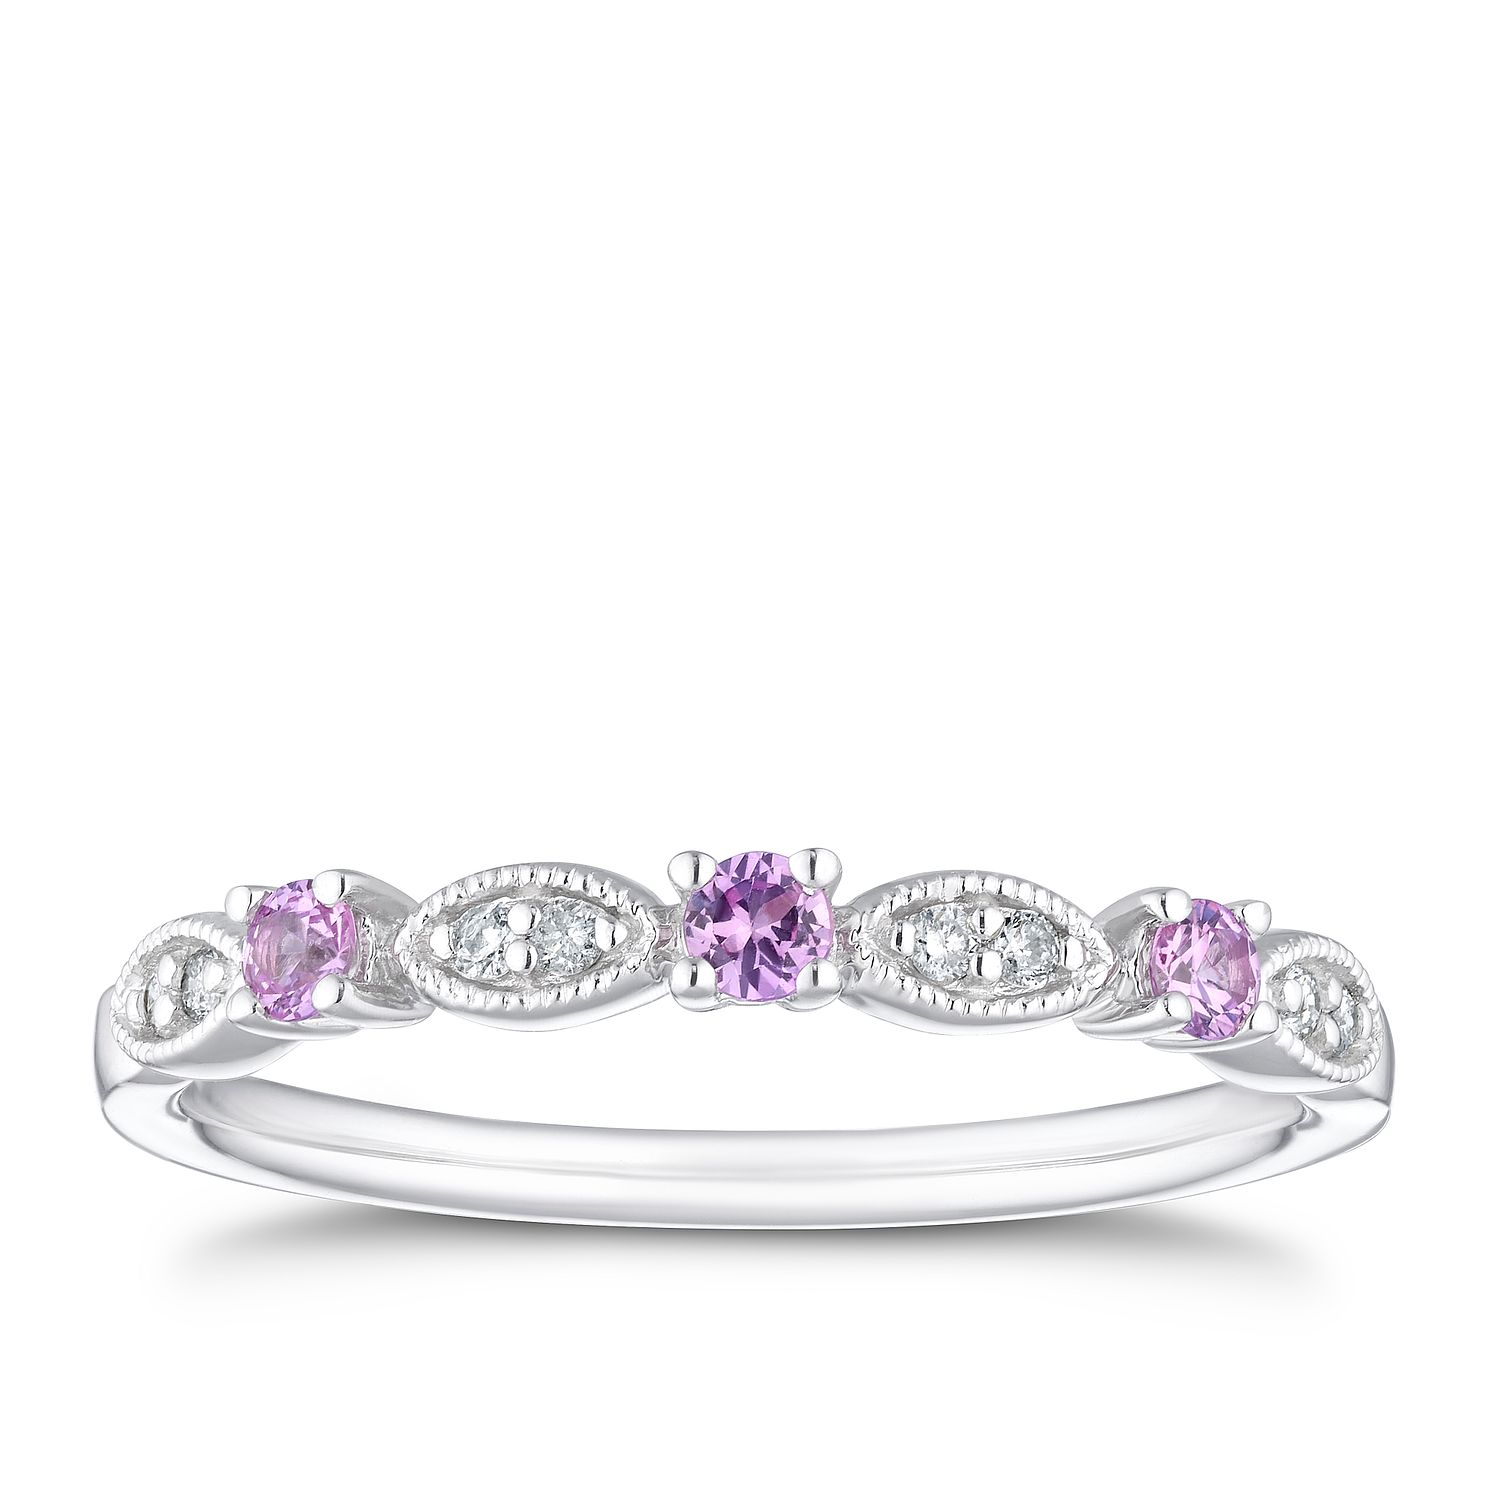 9ct White Gold Diamond & Pink Sapphire Eternity Ring - Product number 4126483